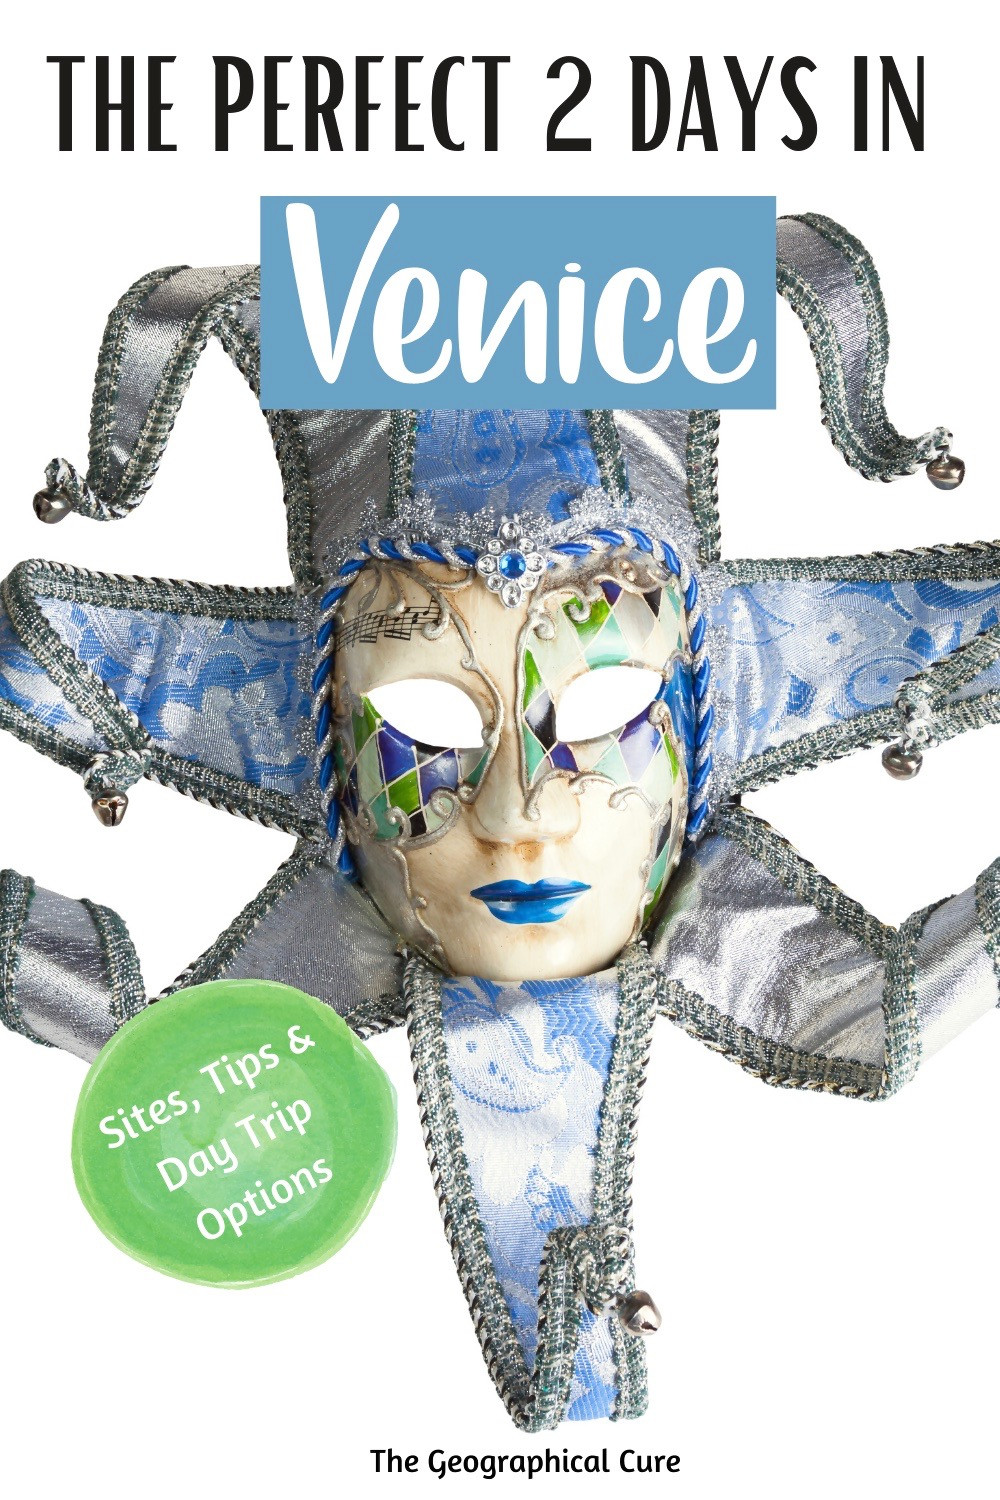 the perfect two day itinerary for Venice